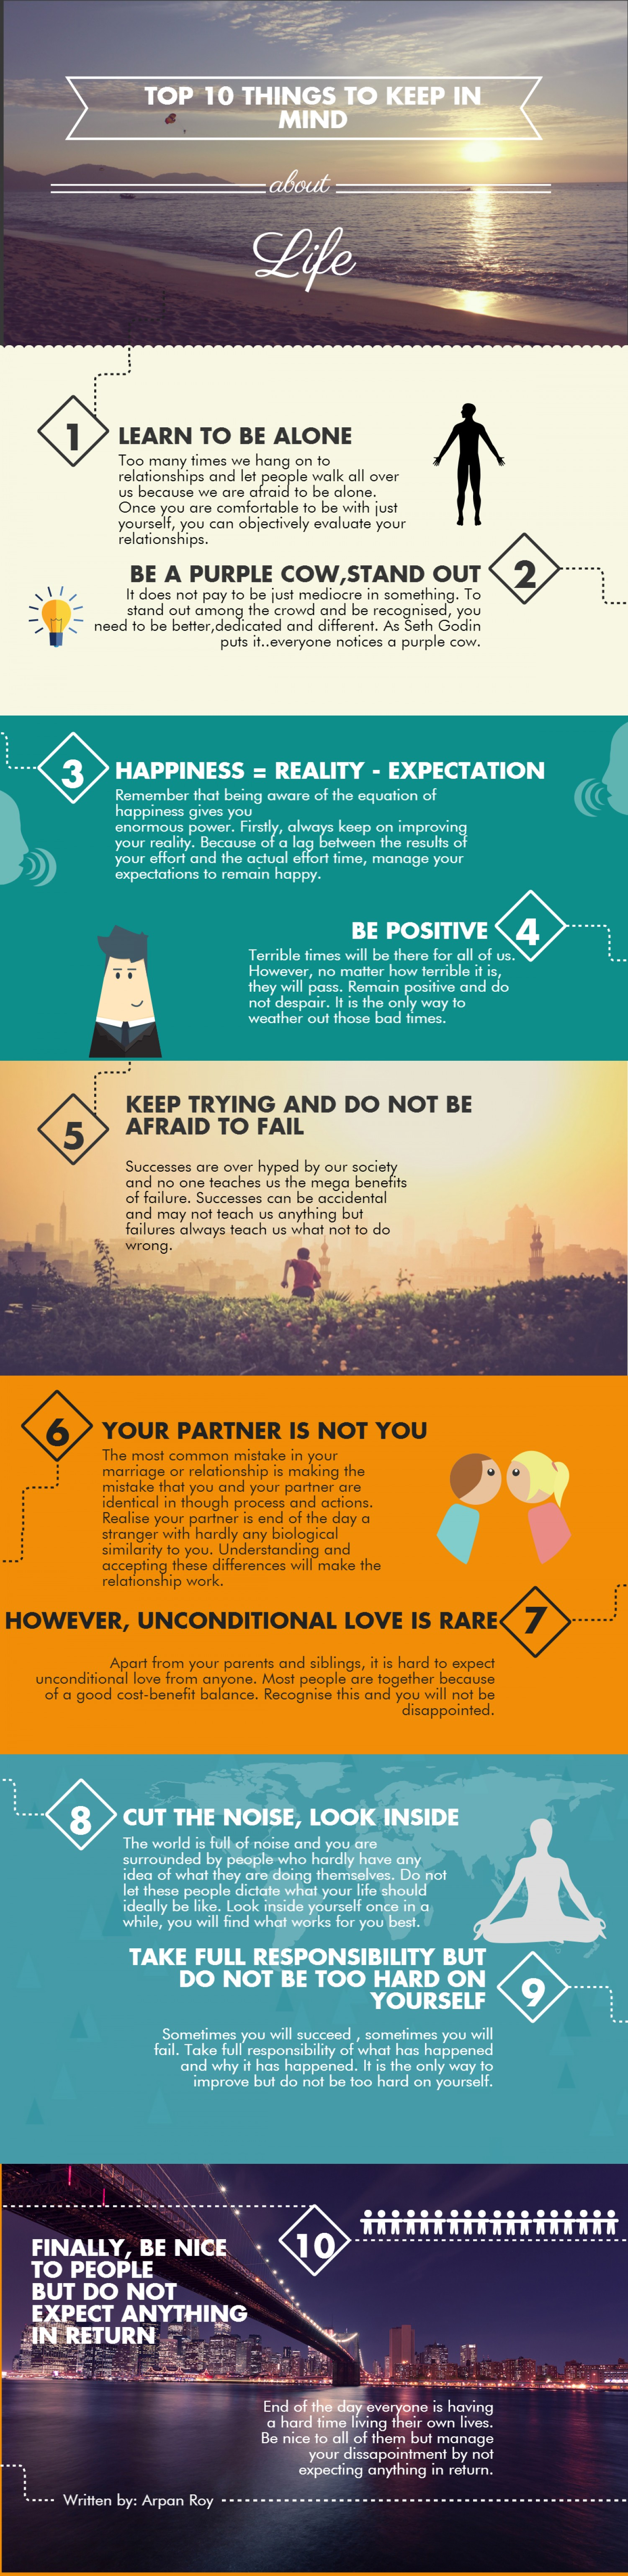 10-things-to-keep-in-mind-about-life